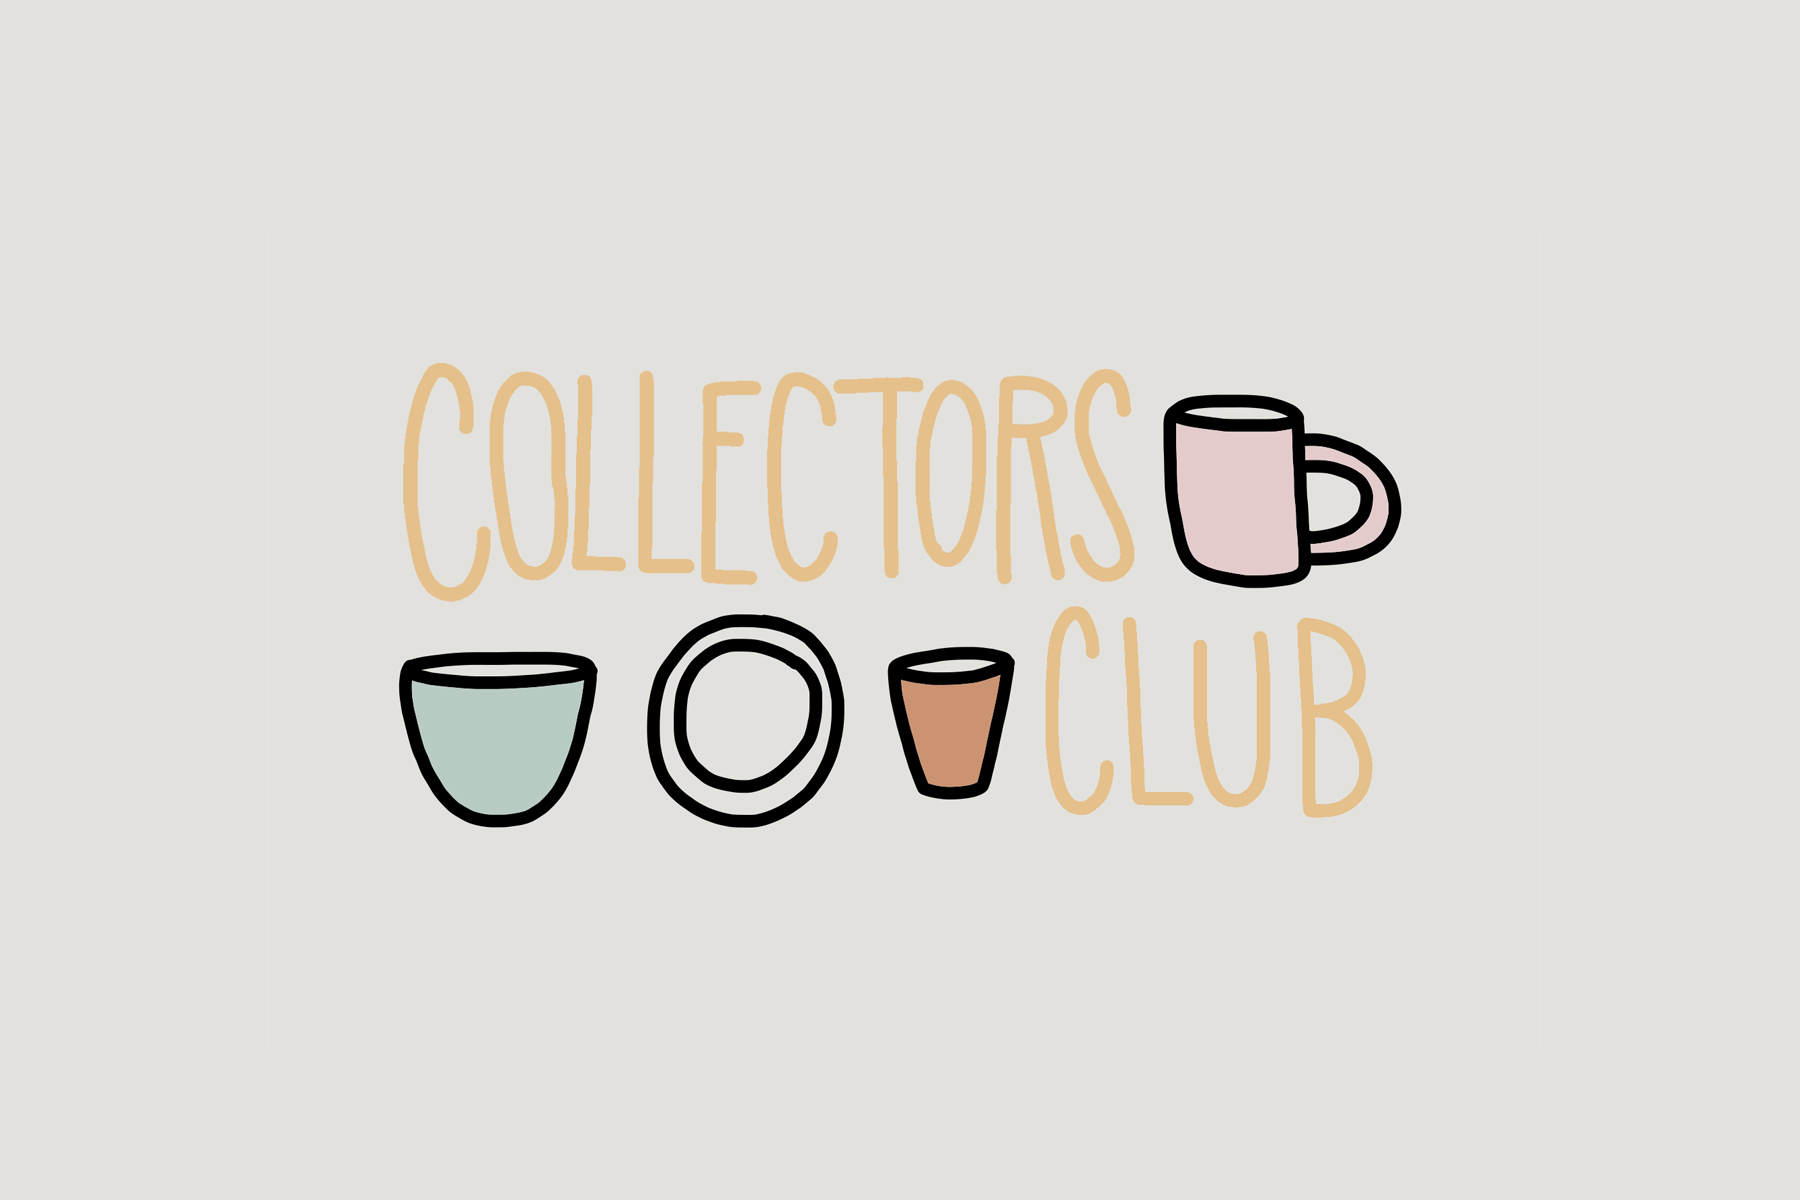 COLLECTORS_CLUB_FINAL.jpg